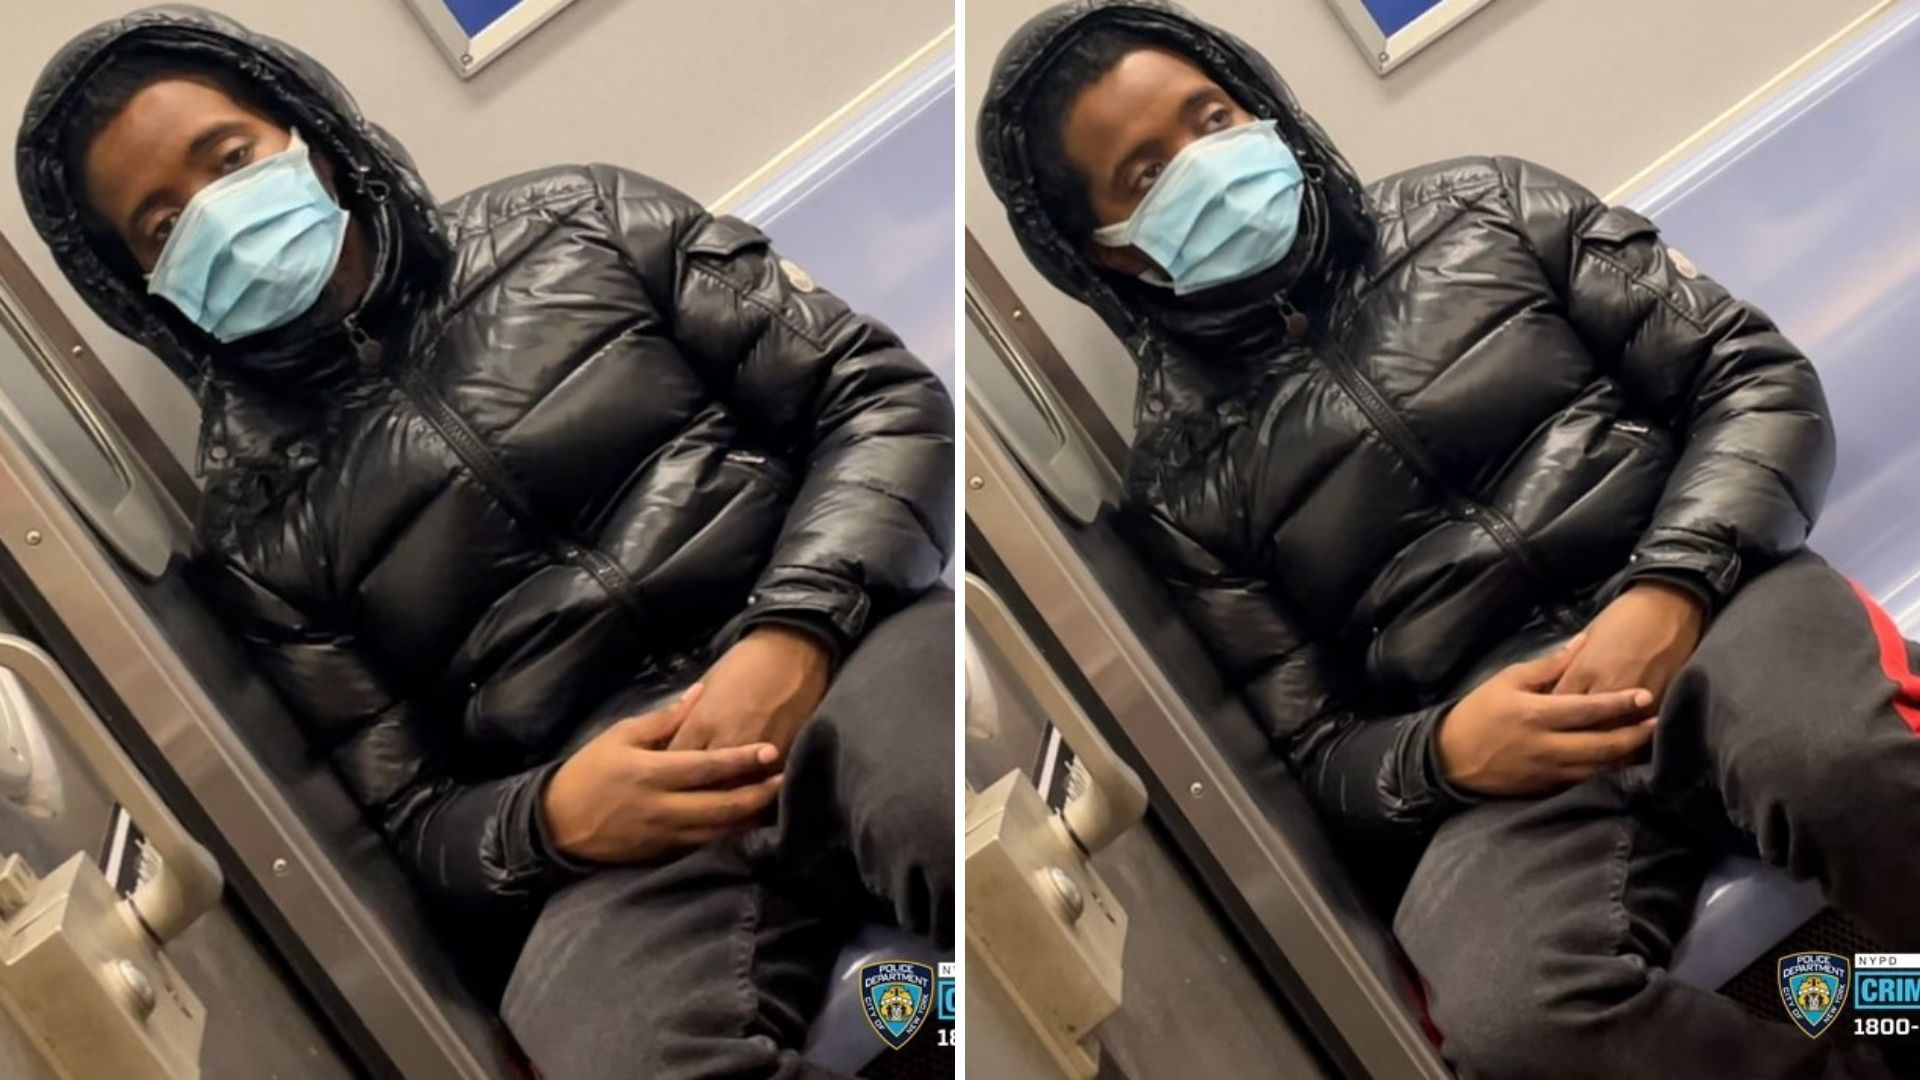 Images of a man accused of exposing himself and masturbating on a Brooklyn subway train on March 20, 2021, according to police. (NYPD)